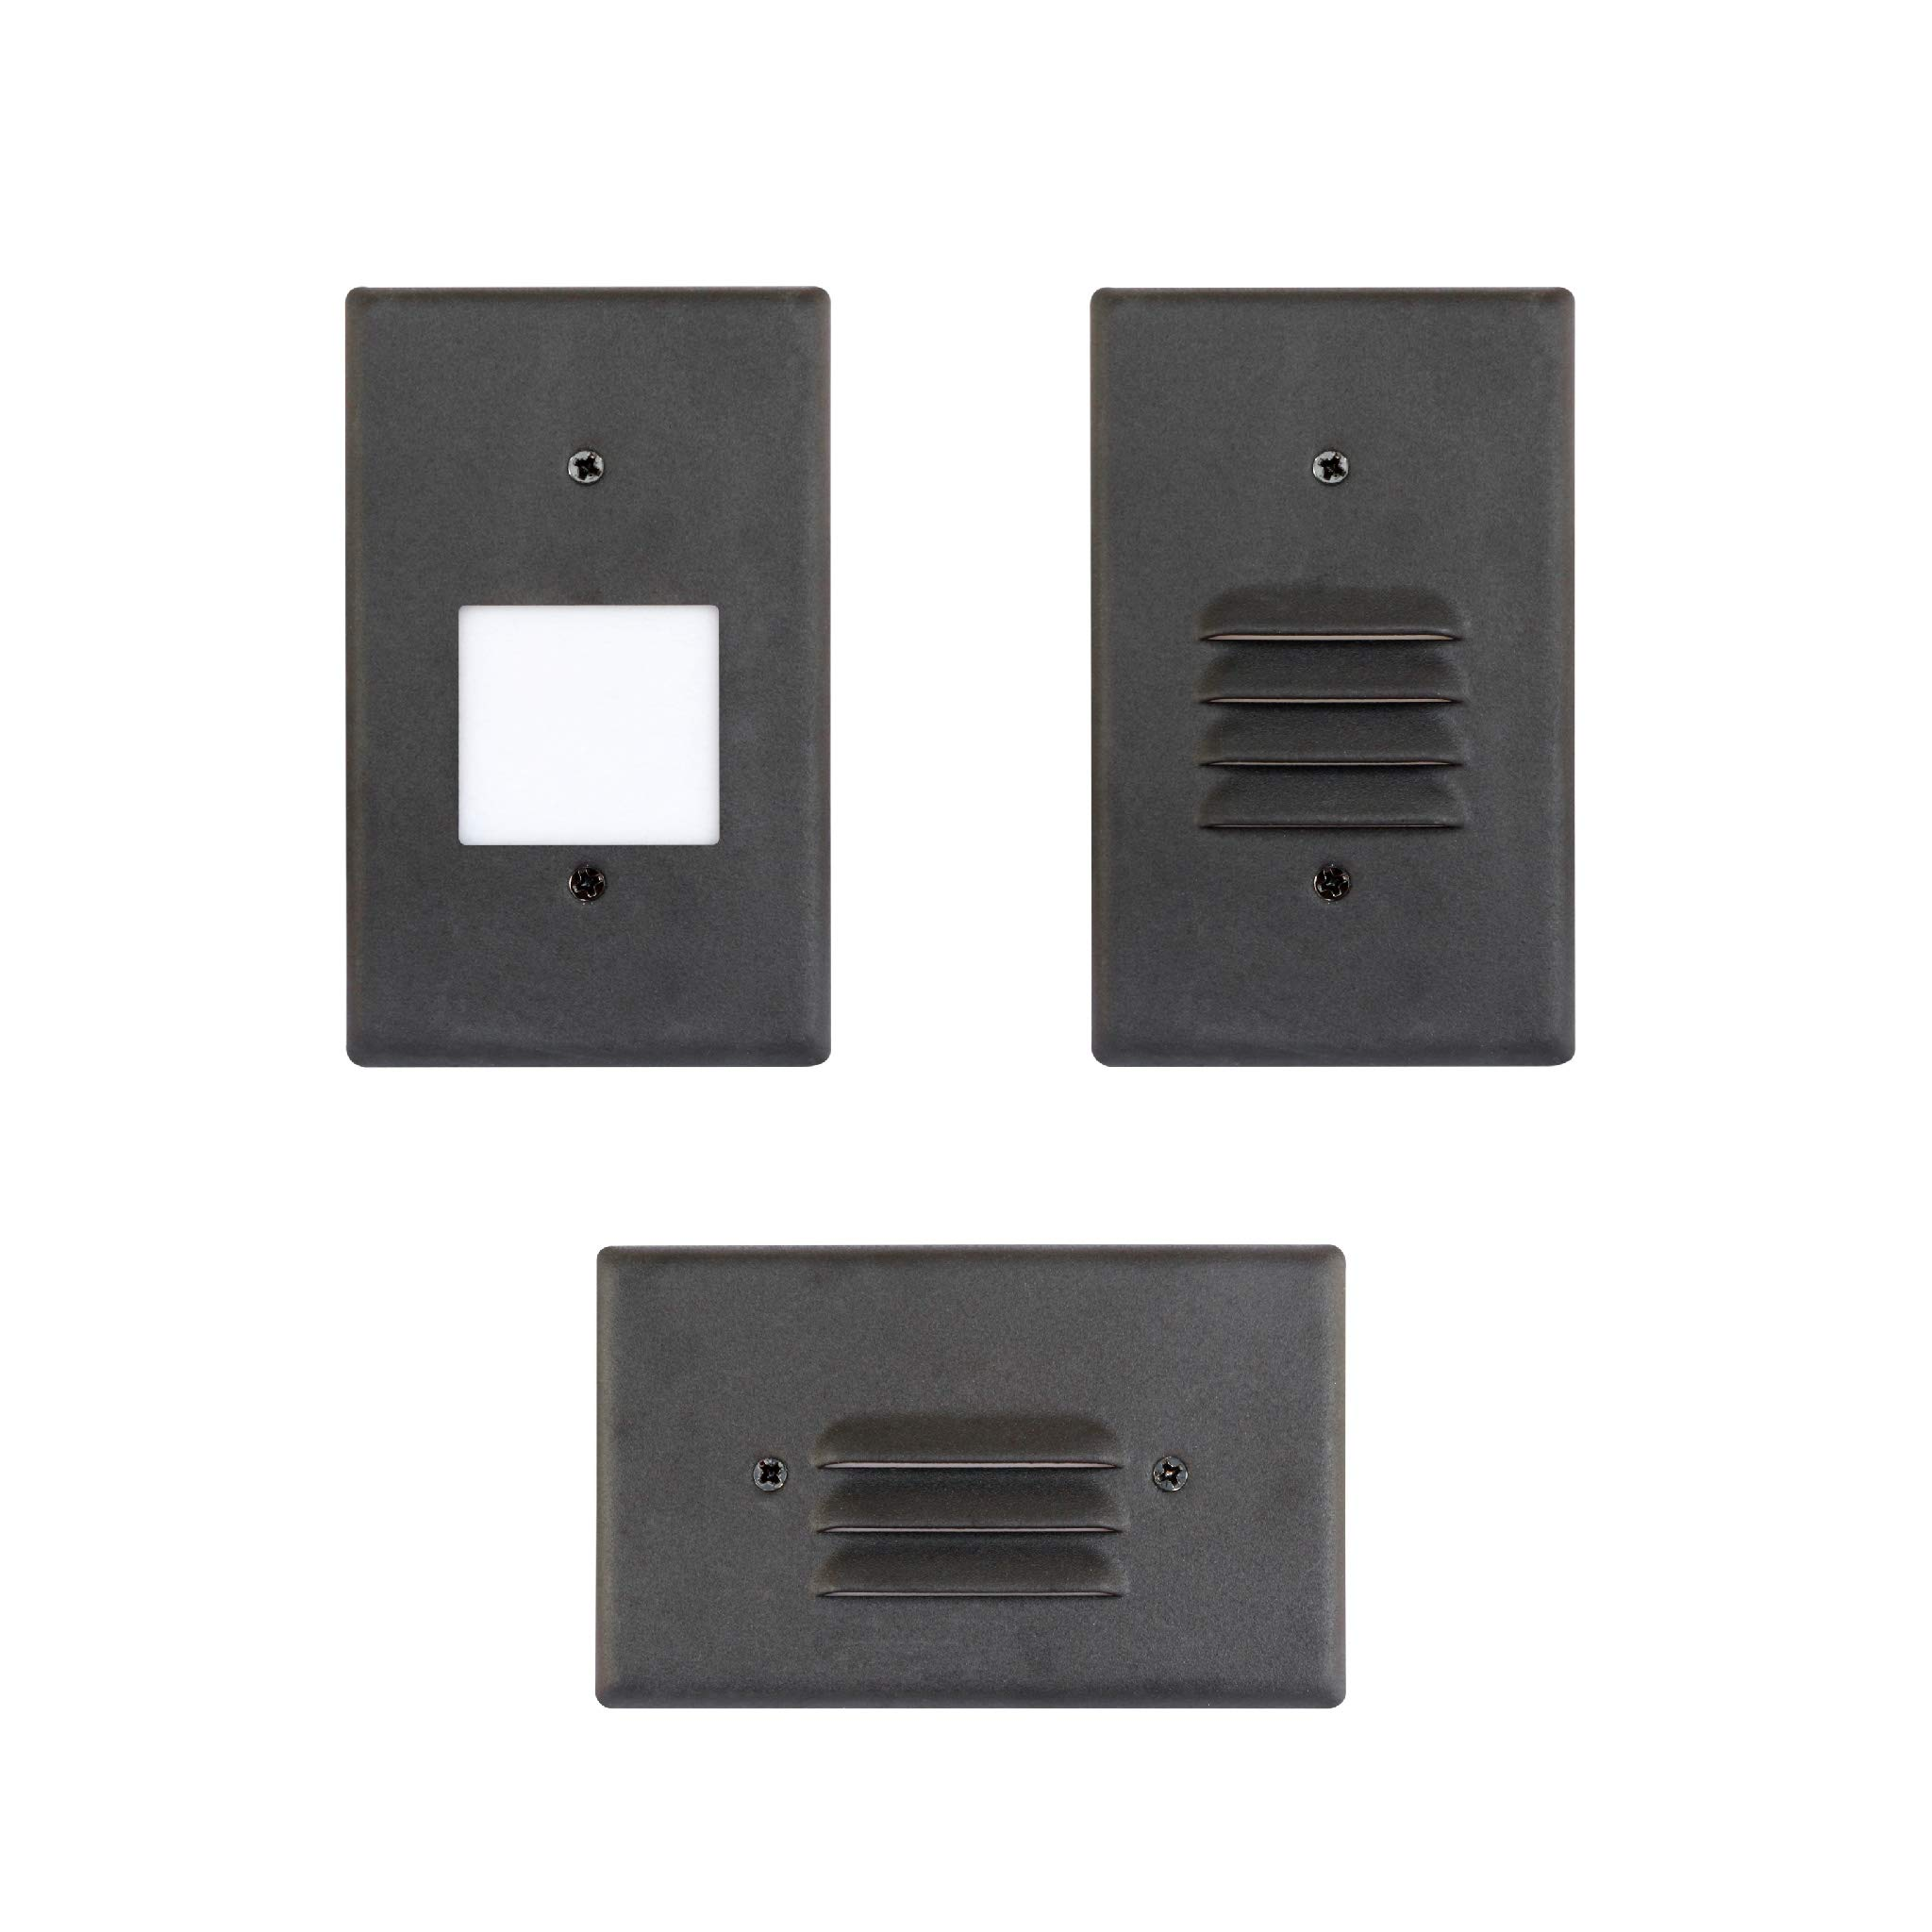 LED Step Light Black Finish (4 Pack) 2W; Interchangeable Plate Flat Frosted (Horizontal Louver/Vertical Louver) 10 YR Warranty; Waterproof; Dimmable; 120V; 150 Lumnes (Soft White 2700K)